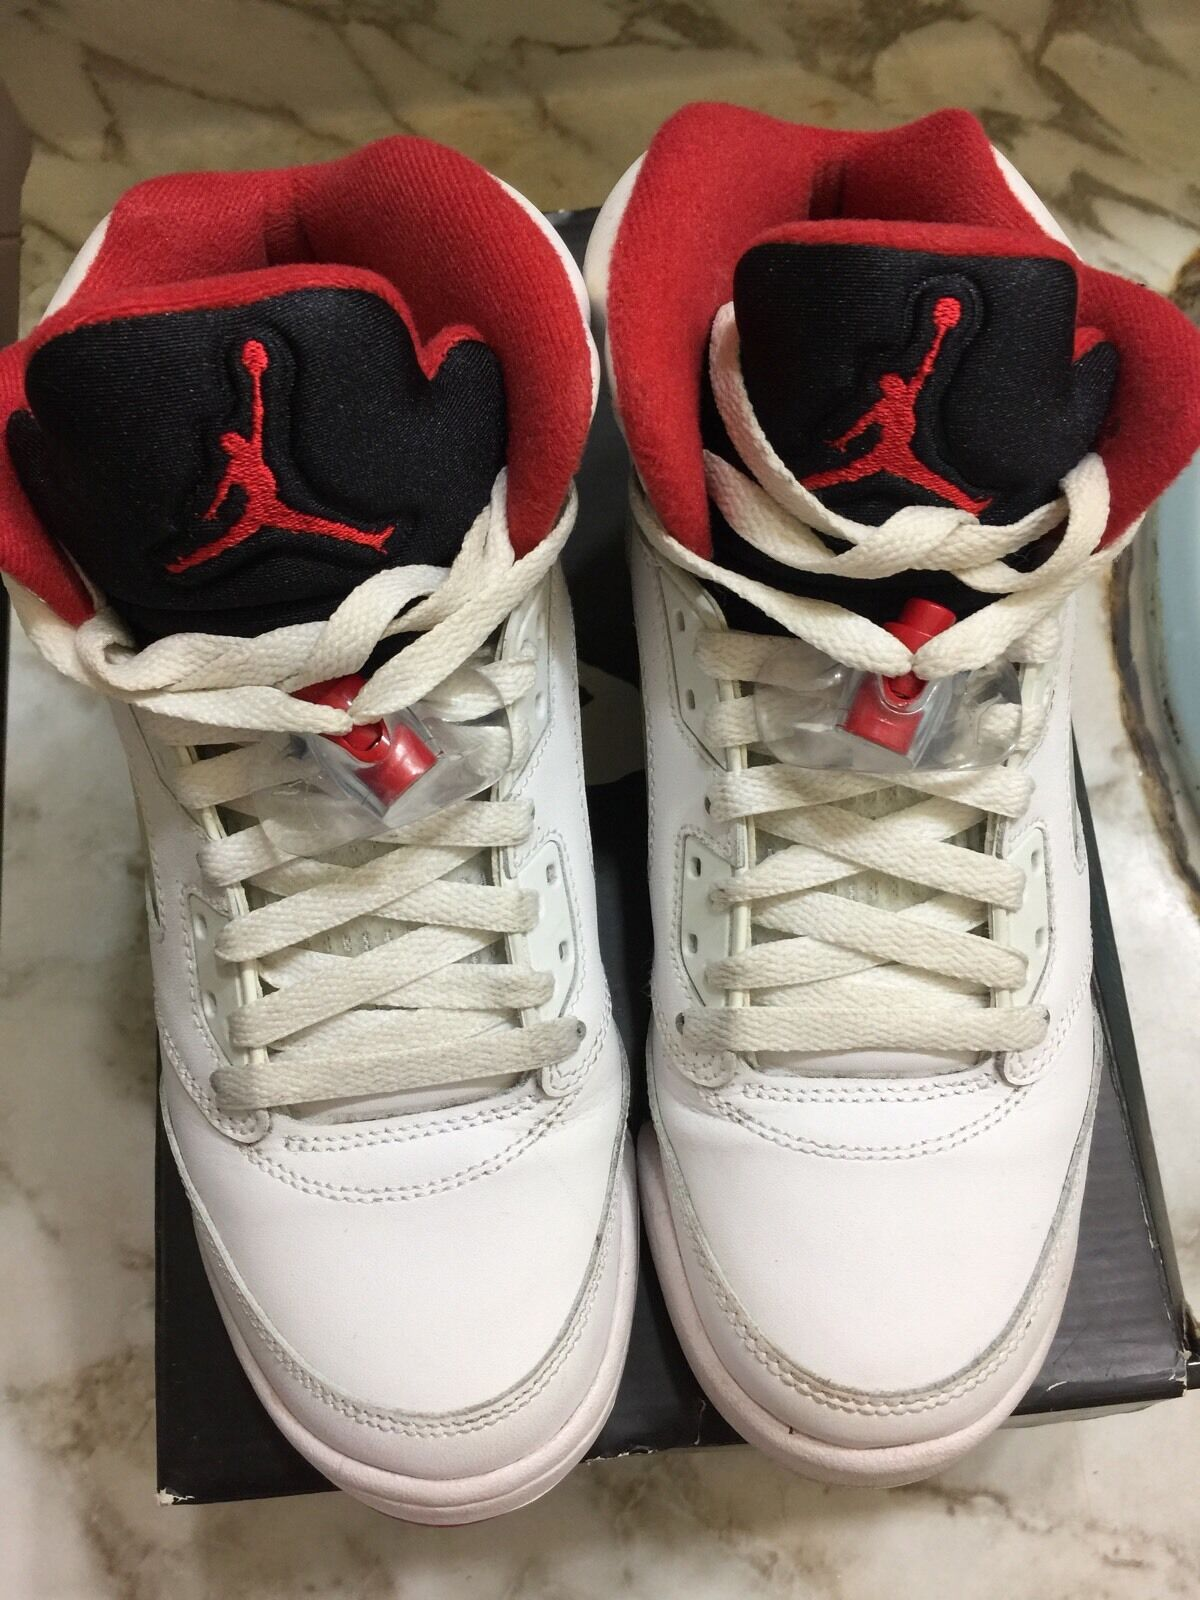 Air Jordan Retro 5 Fire Red Comfortable The most popular shoes for men and women